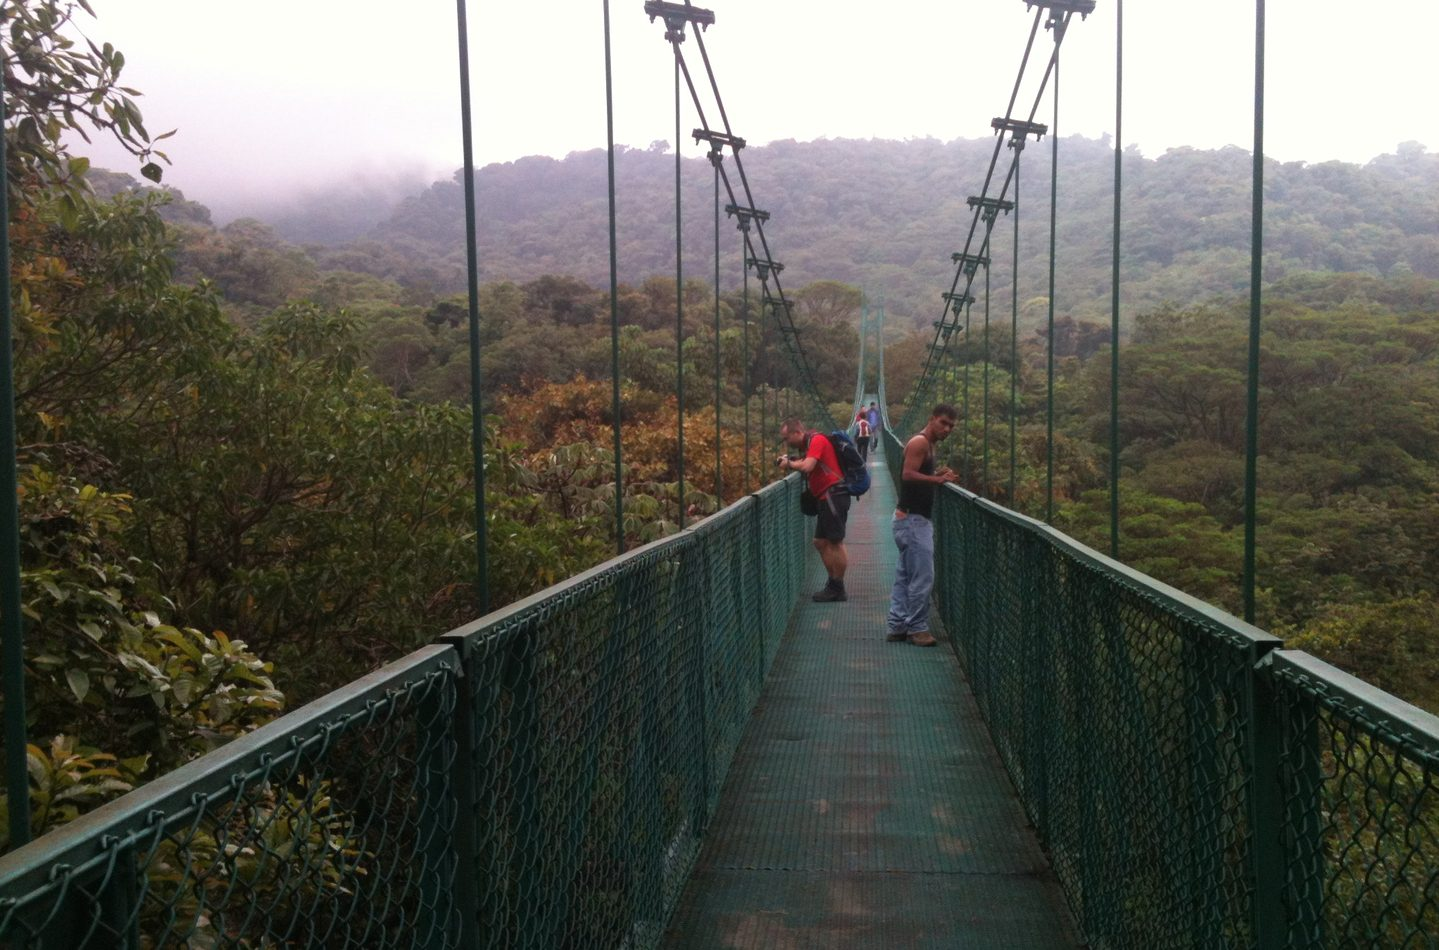 Monteverde Cloud Forest Hanging Bridges - La Oveja Negra Tamarindo Tours